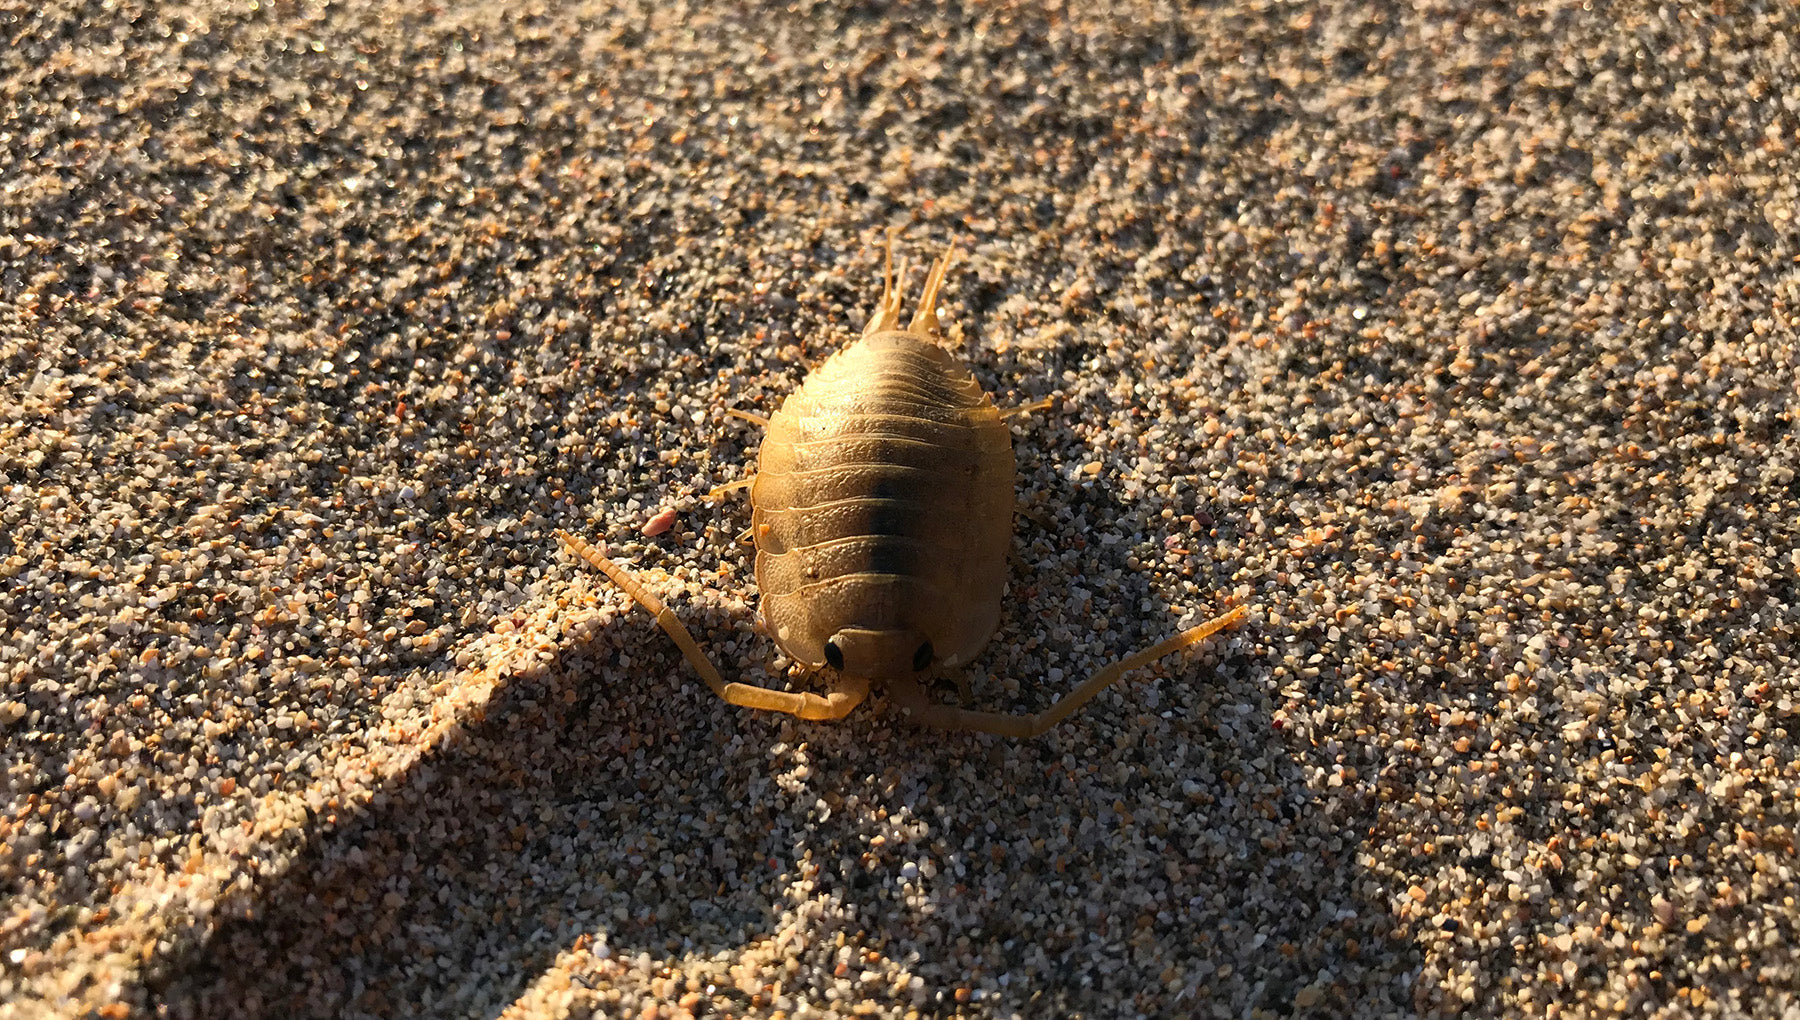 Sea Slater, a small crustacean, emerging from the sand